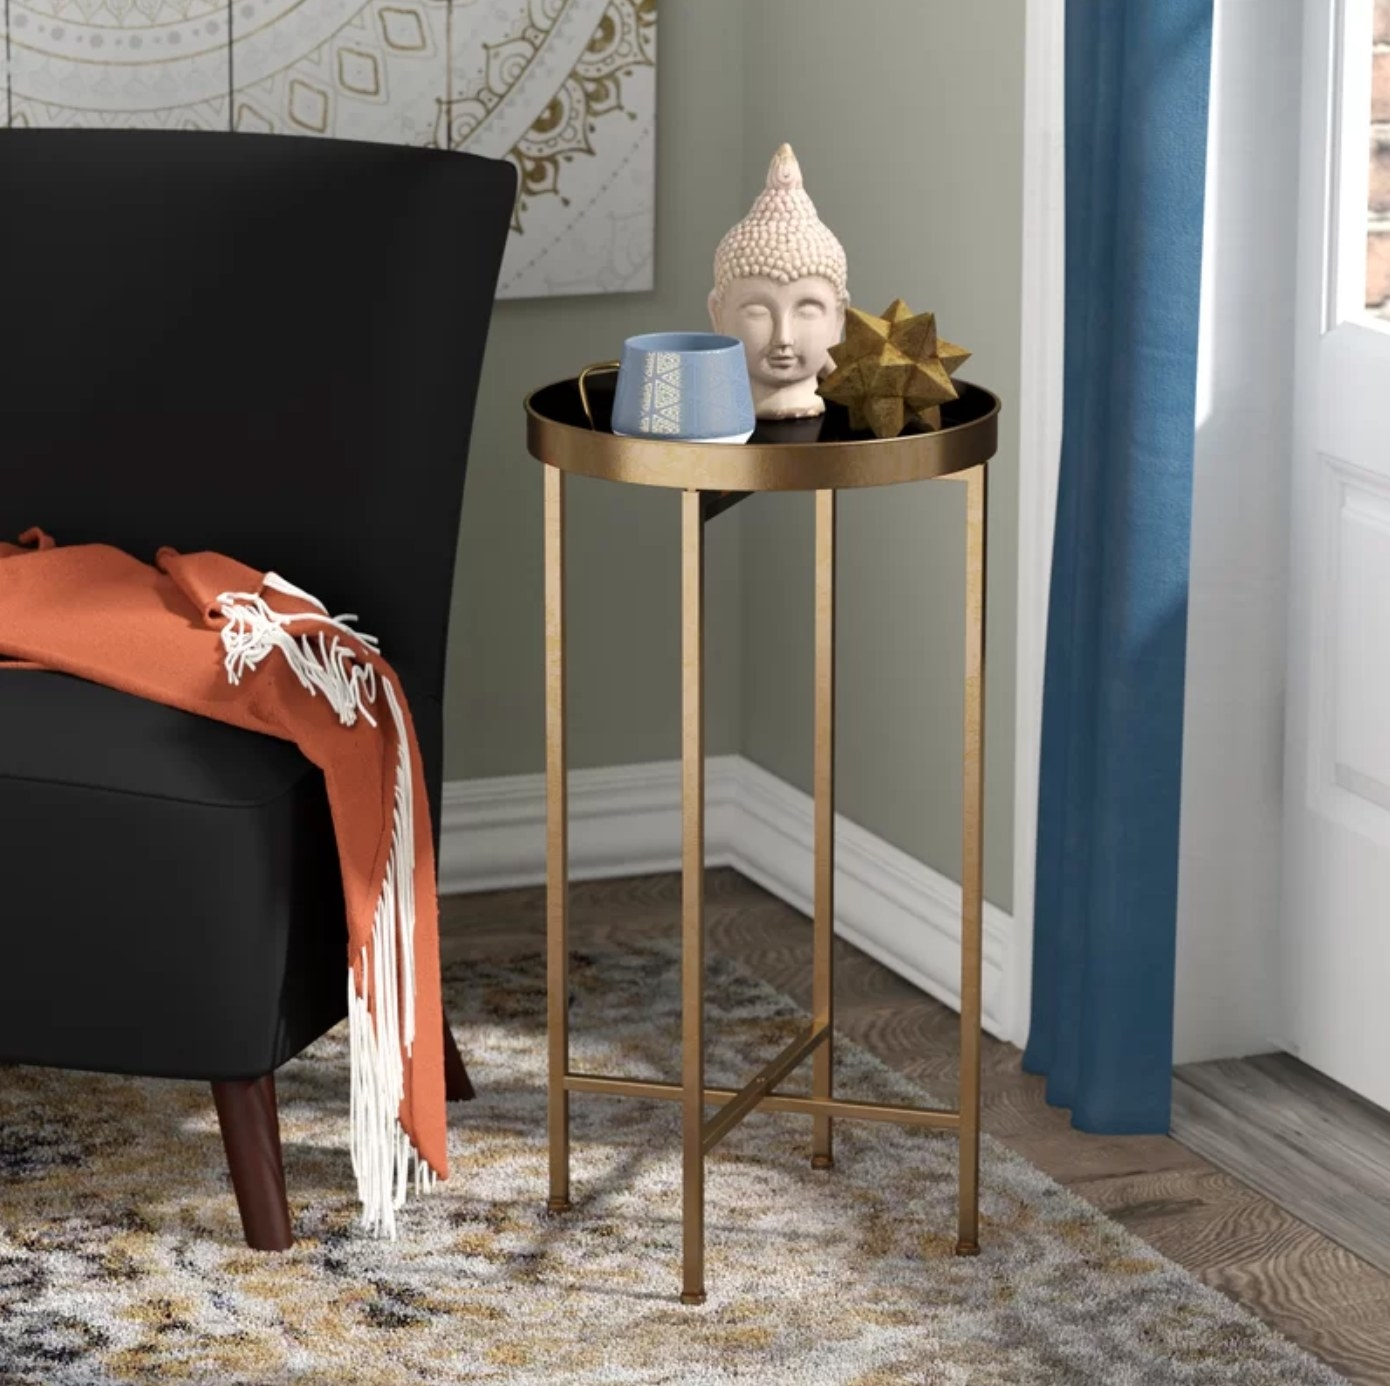 The cross leg end table in gold and black